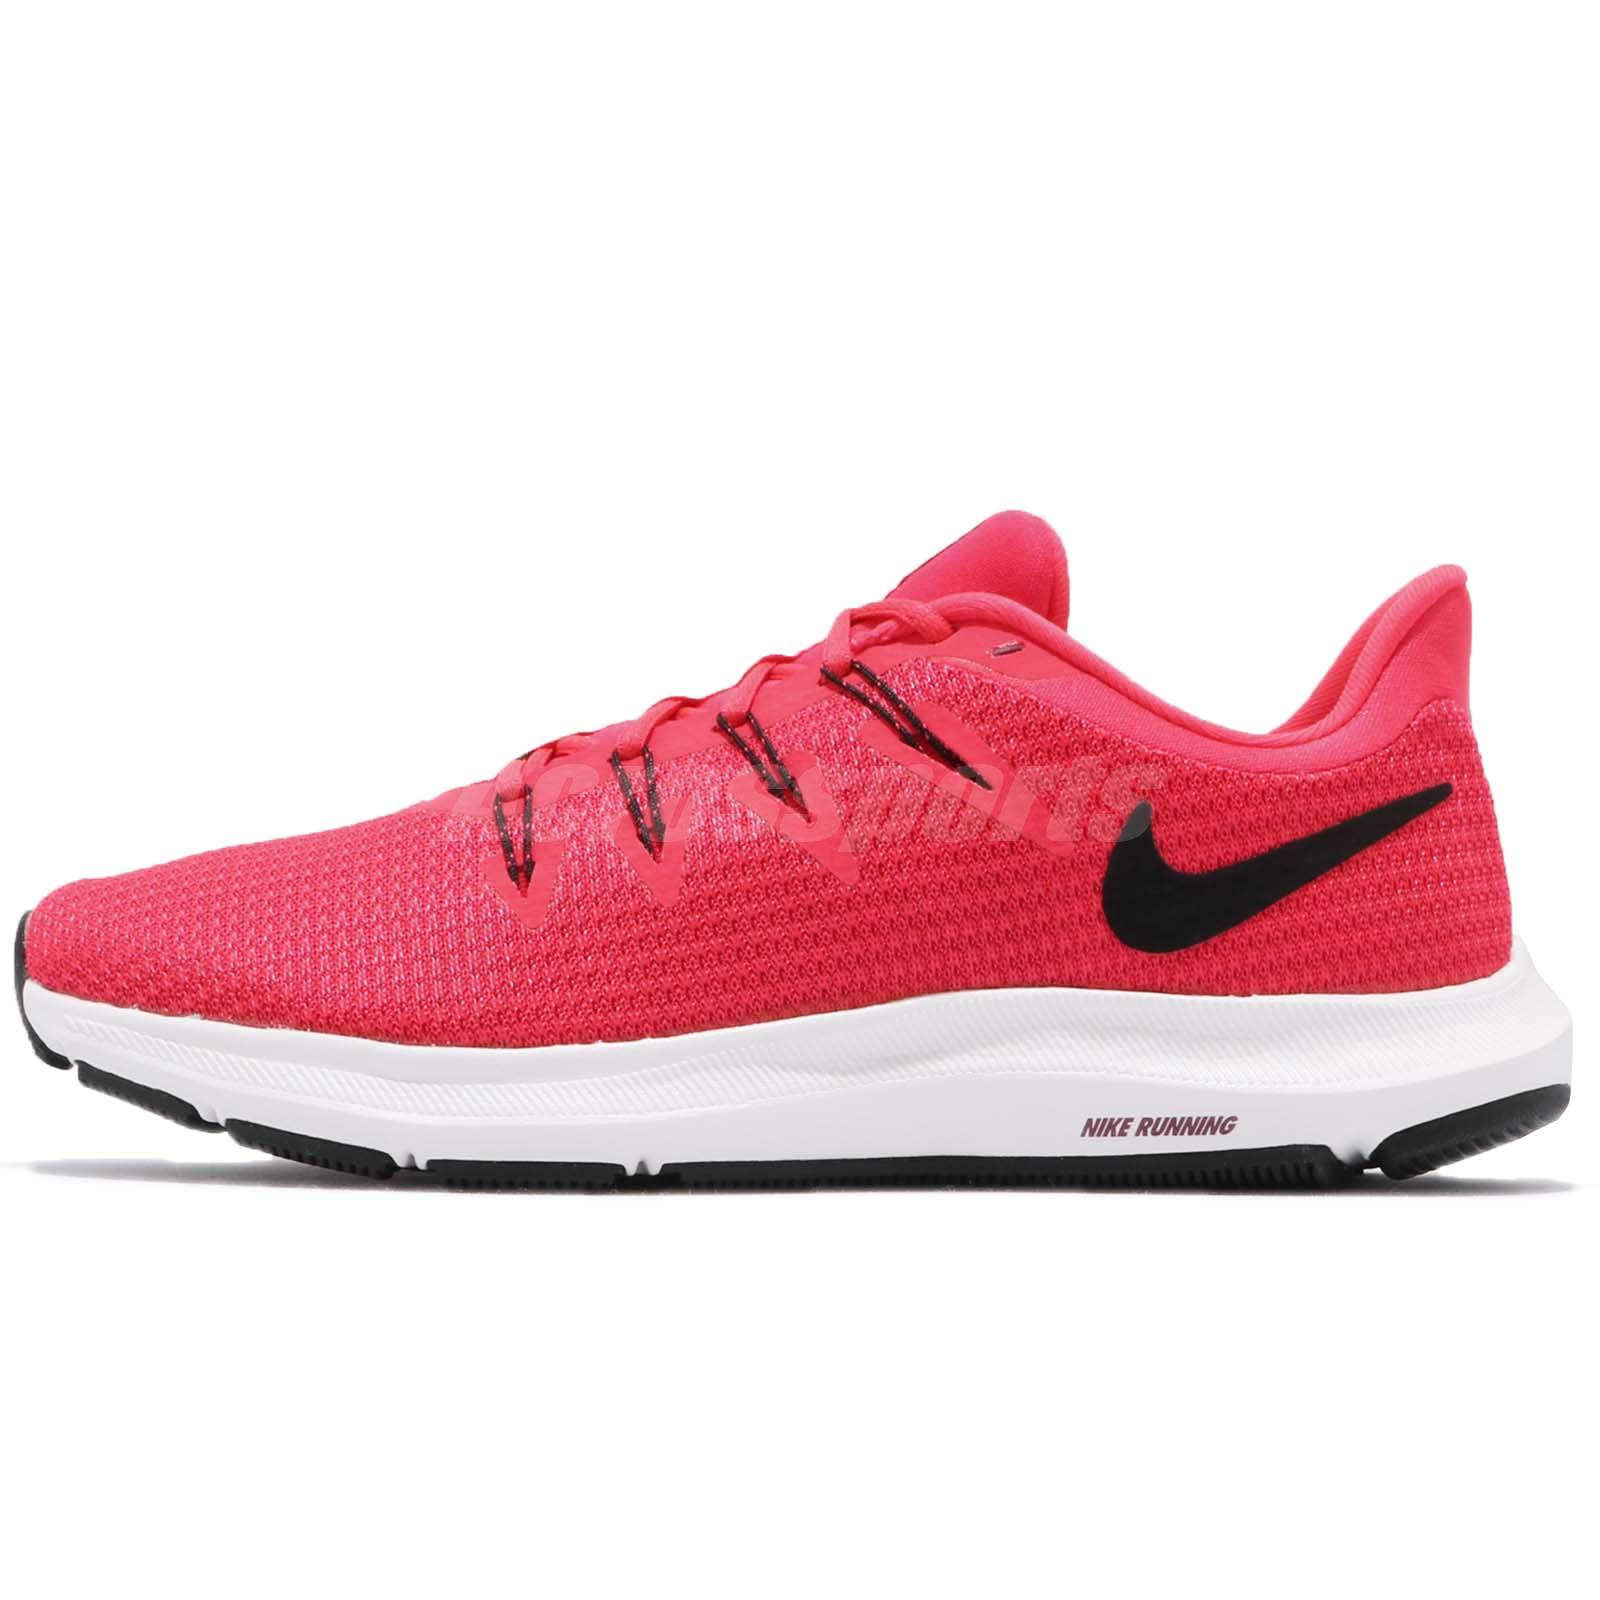 36295c30bc36 Nike Wmns Quest Red Orbit Black White Women Running Shoes Sneakers AA7412- 601